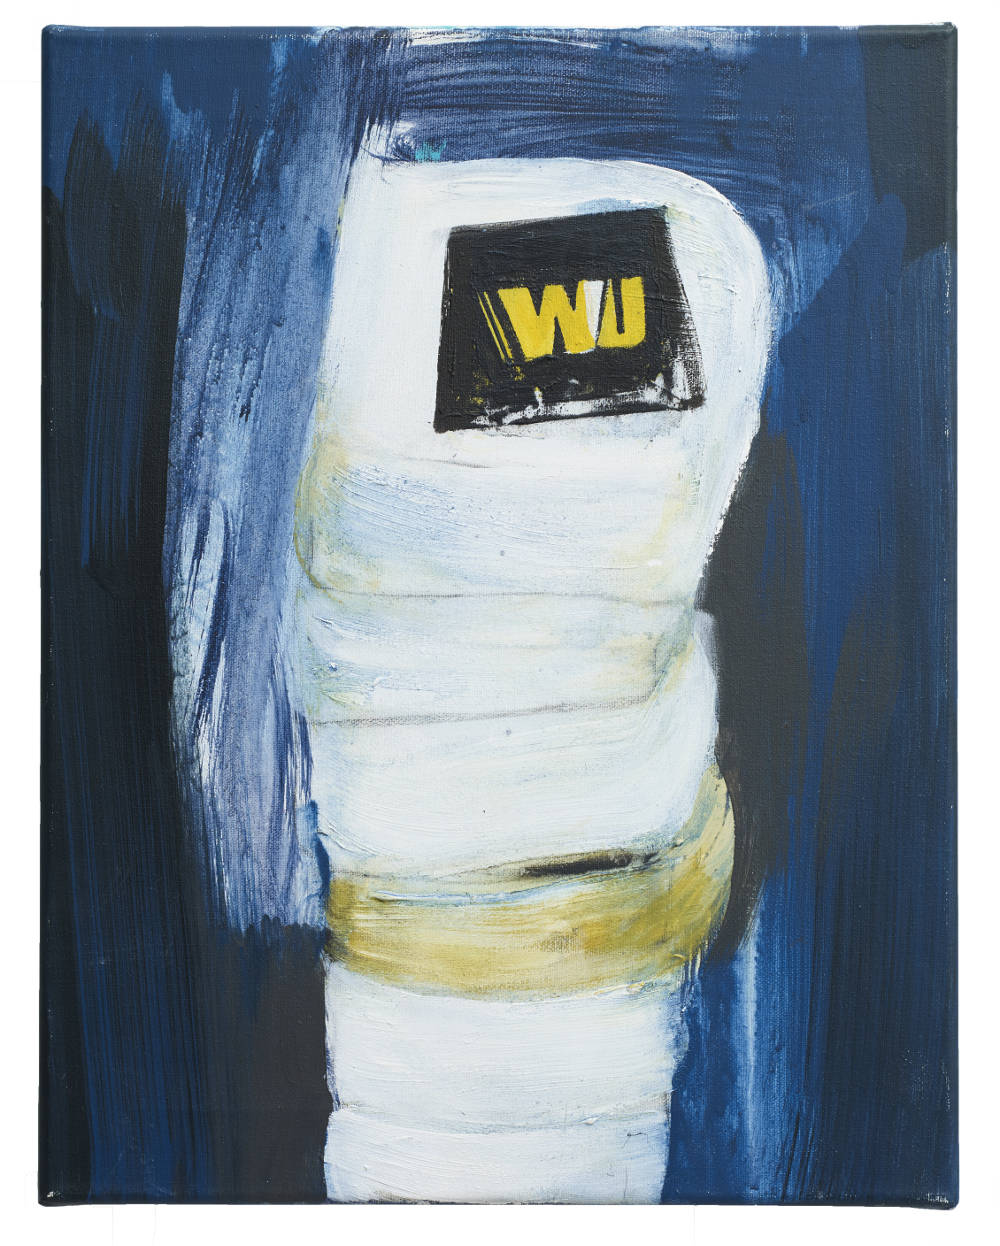 Brian Maguire, Cocaine Laundry Series, WU, 2016. Acrylic on canvas 46 x 35.5 cm